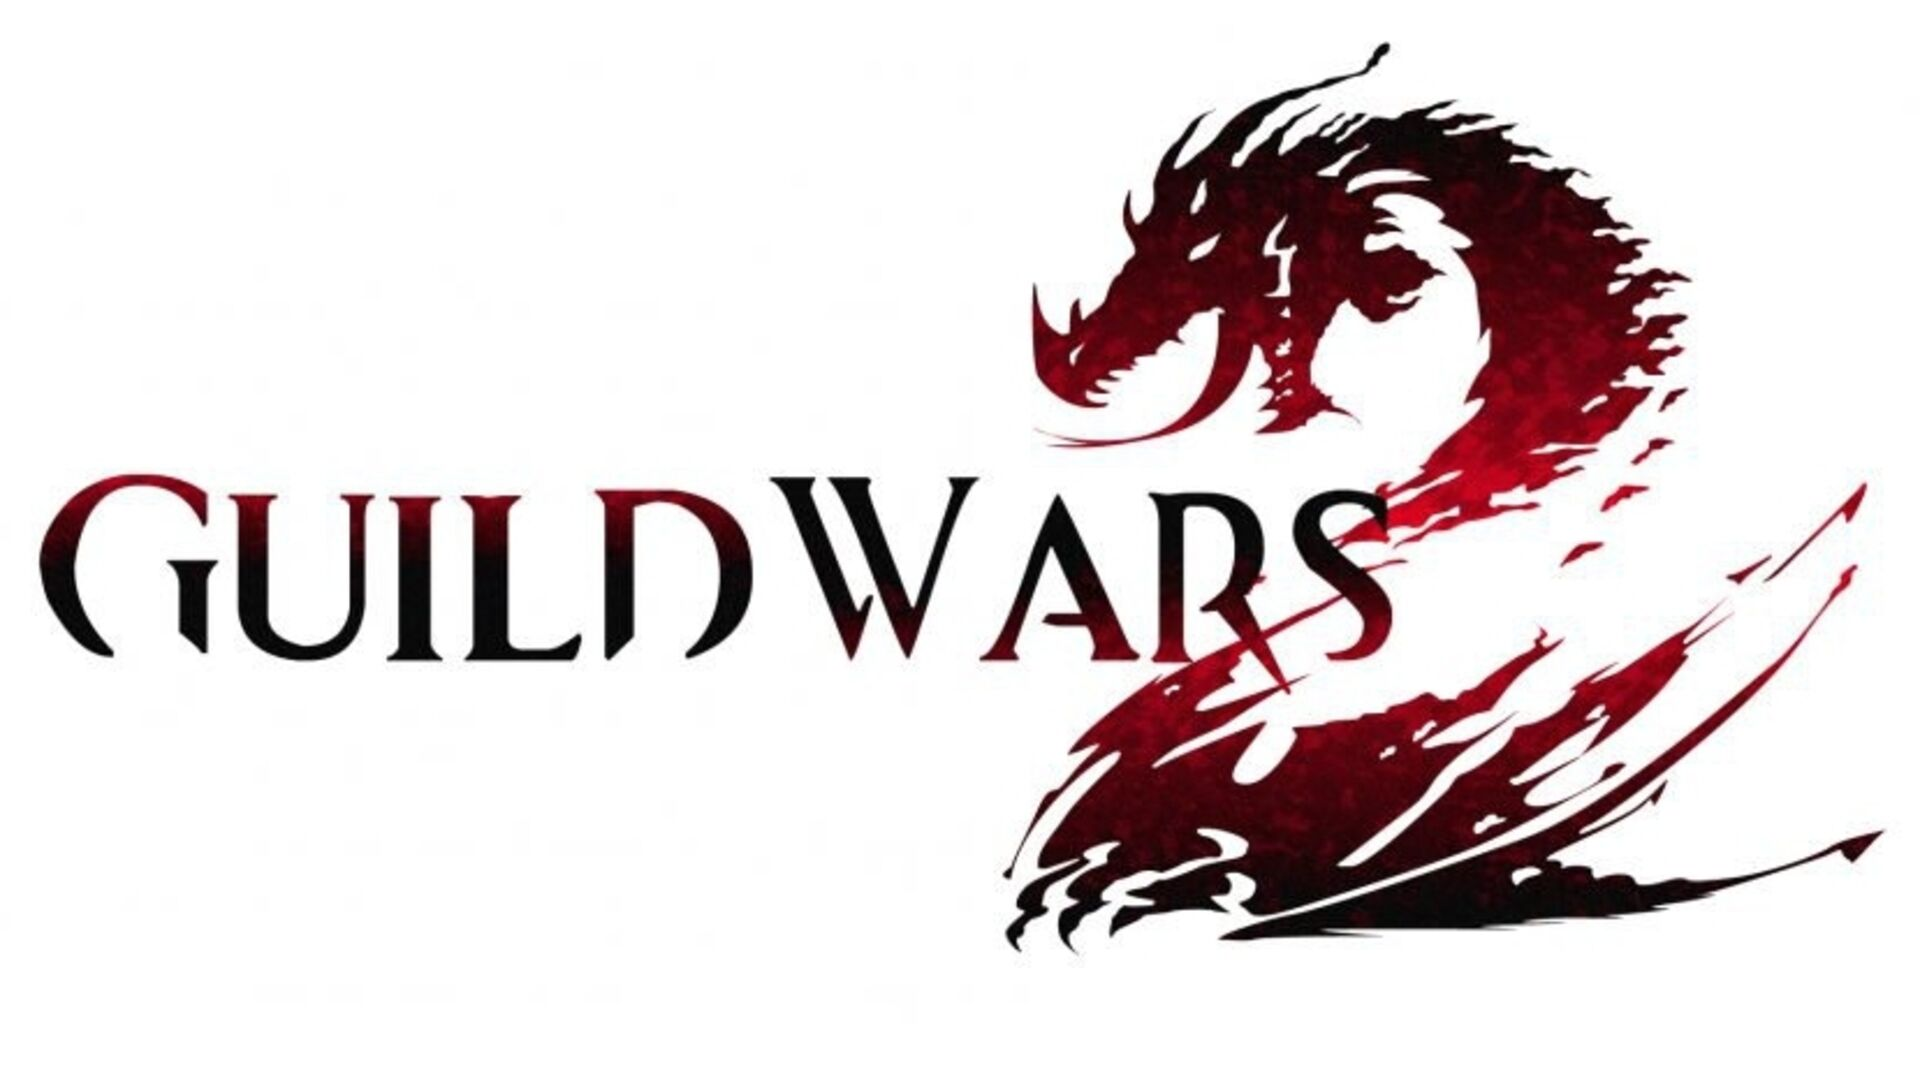 In the wake of the ArenaNet firings, women game devs are